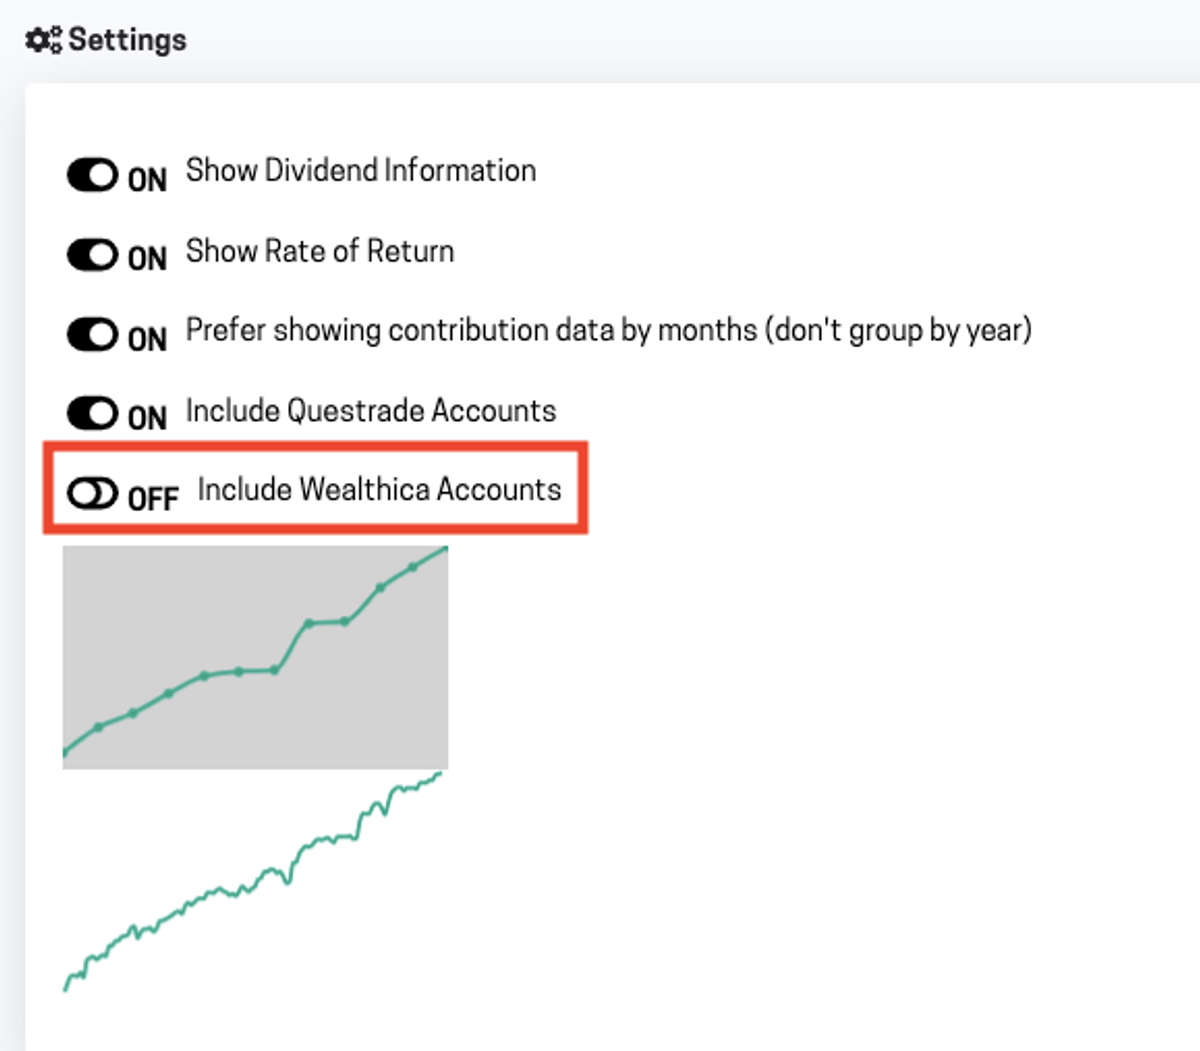 Wealthica reporting settings